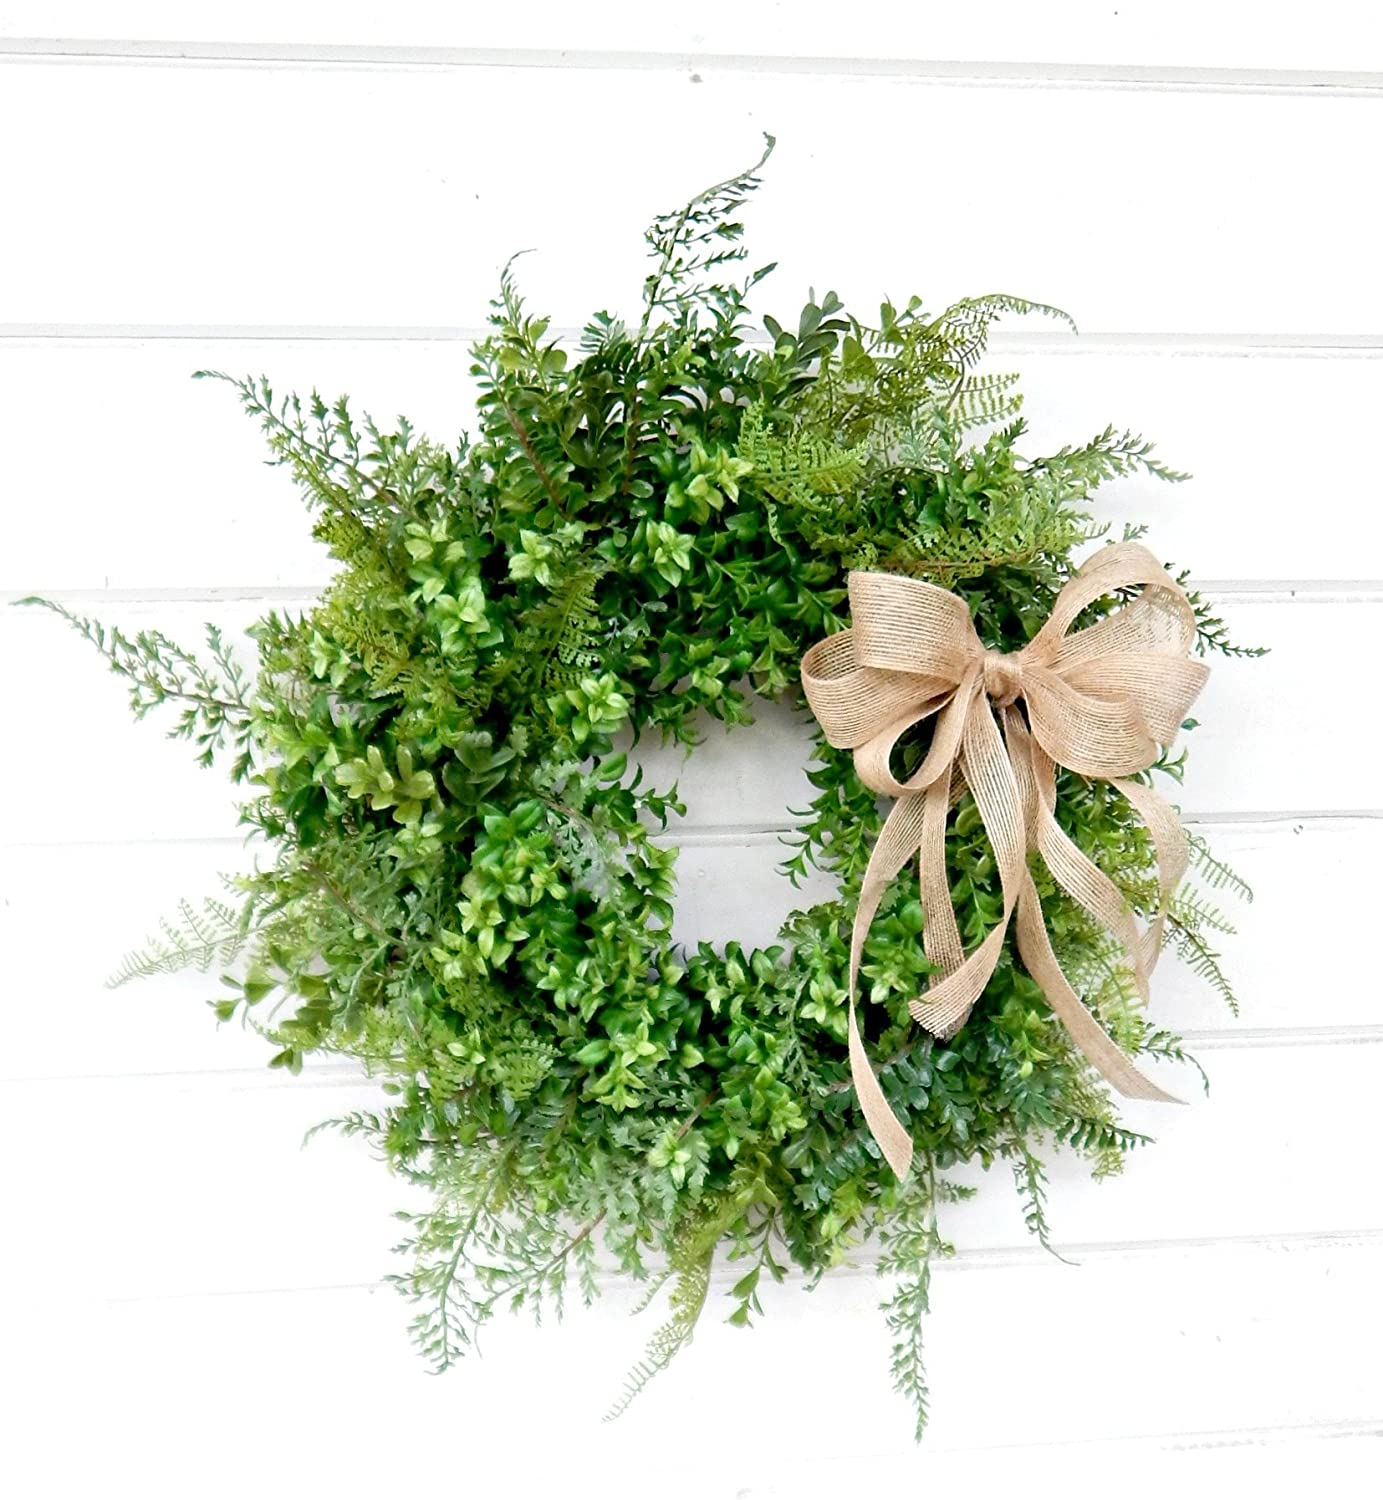 Boxwood Wreath, Fern Wreath, Fall Wreath, Winter Wreath, Farmhouse Wreath, Farmhouse Home Decor, Housewarming Gift, Door Wreath, Front Door Wreath, Holiday Wreath, Summer Wreath, Year Round Wreath